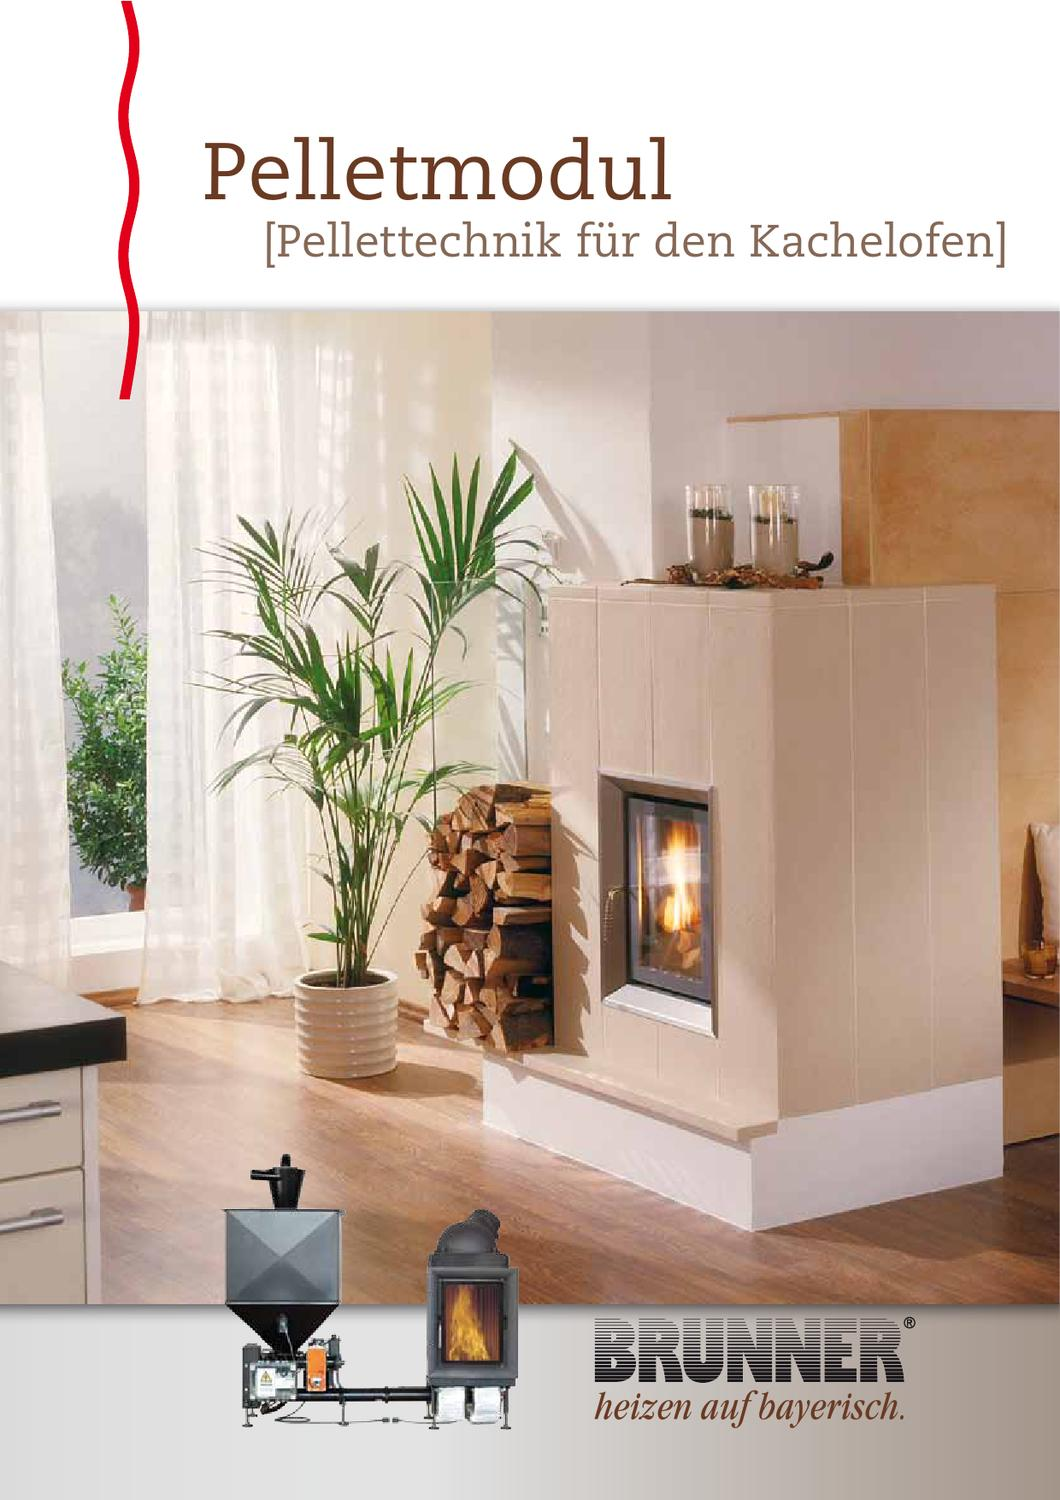 brunner pelletmodul by stude feuerungstechnik gmbh issuu. Black Bedroom Furniture Sets. Home Design Ideas